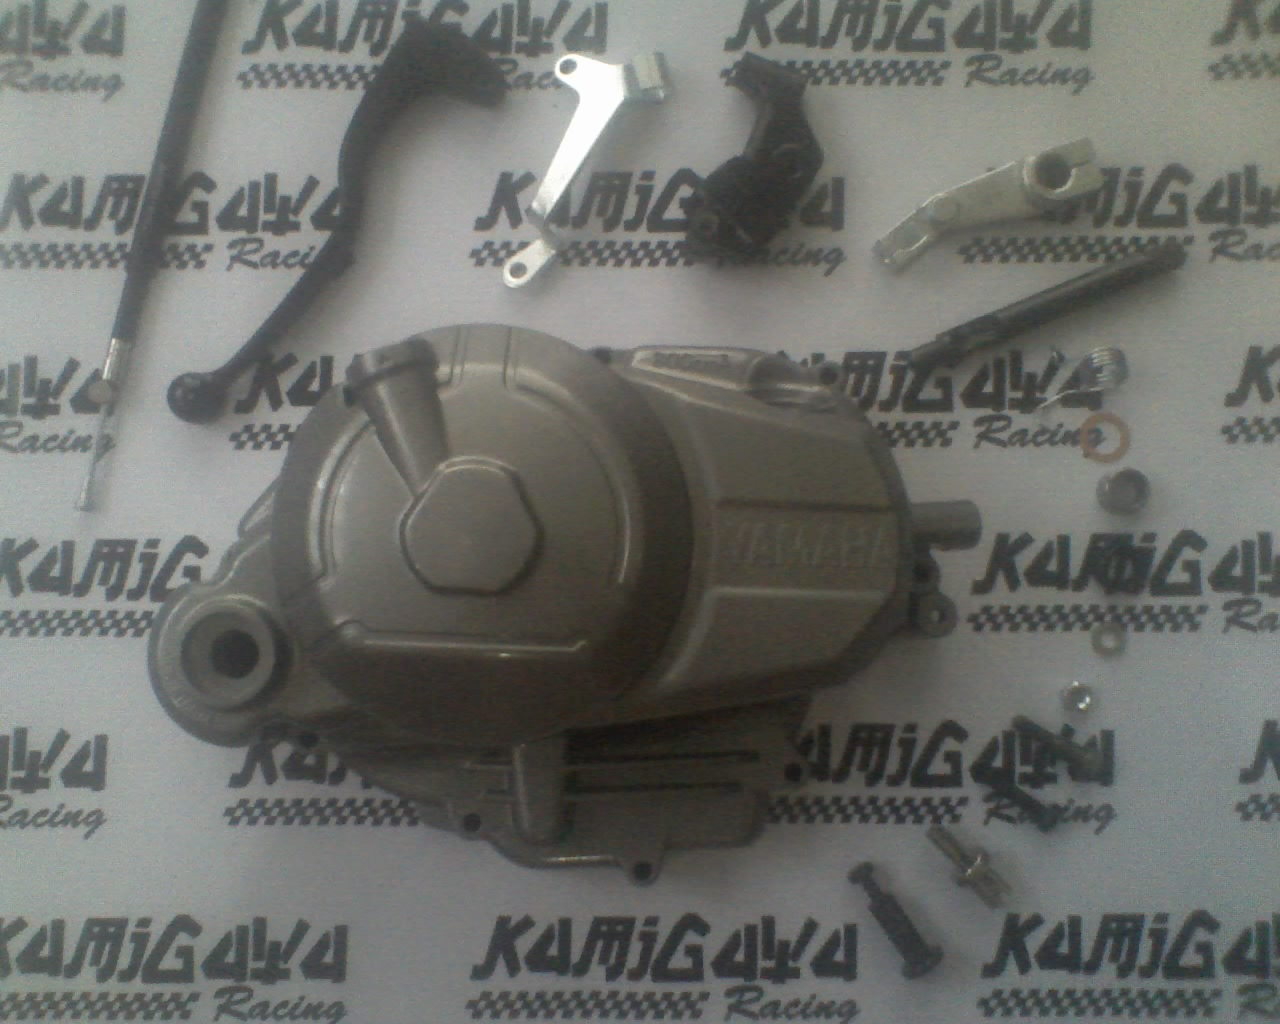 Manual clutch kit and clutch upgrades for underbones manual clutck kit for the following are available yamaha x1